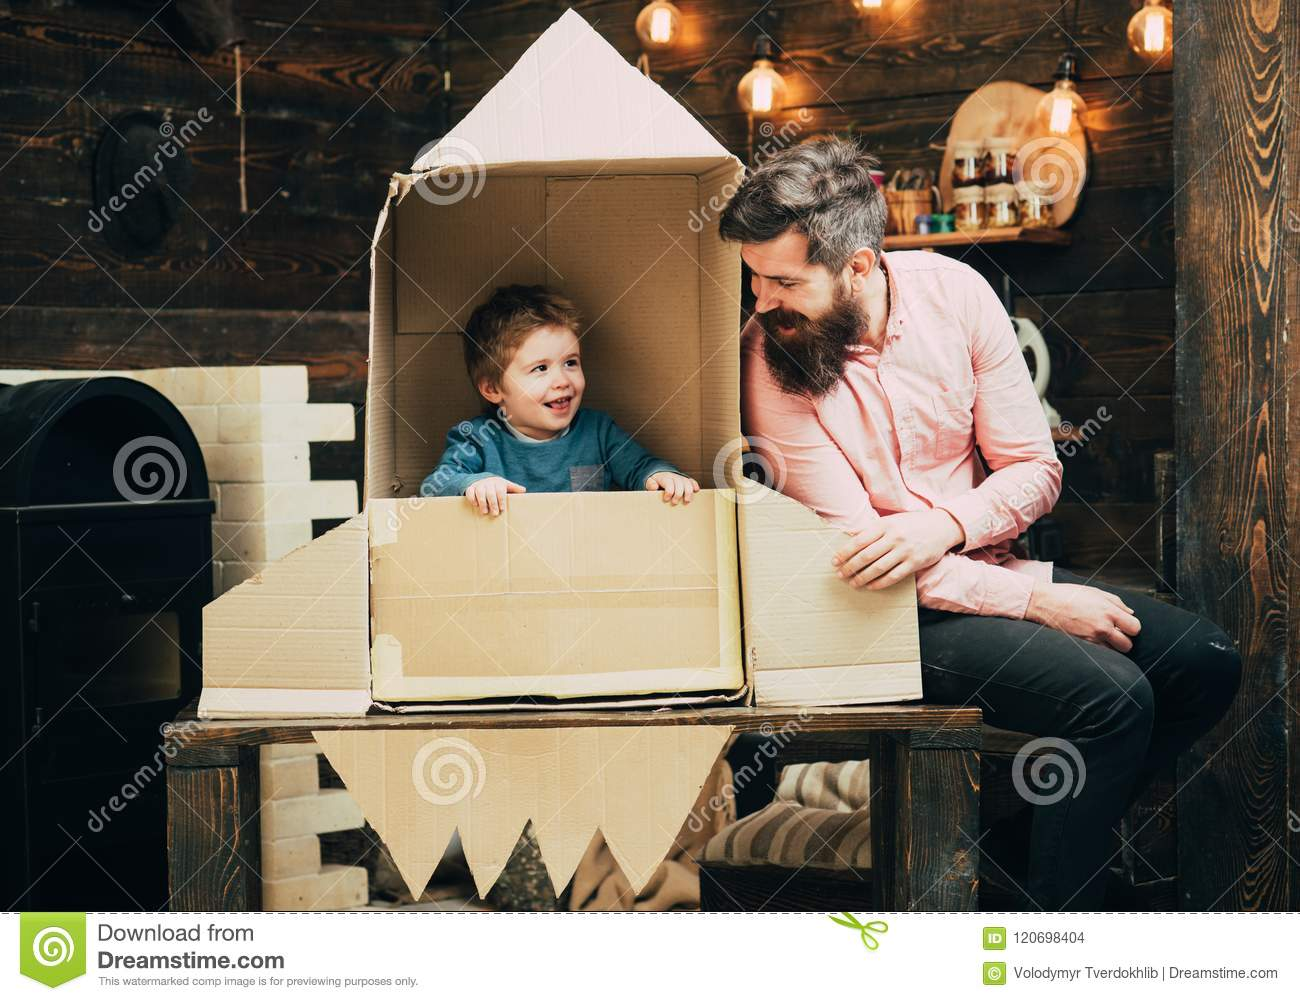 Travel and adventure. Father and small boy in paper rocket. Family and childhood. Earth day concept. father day. Dream